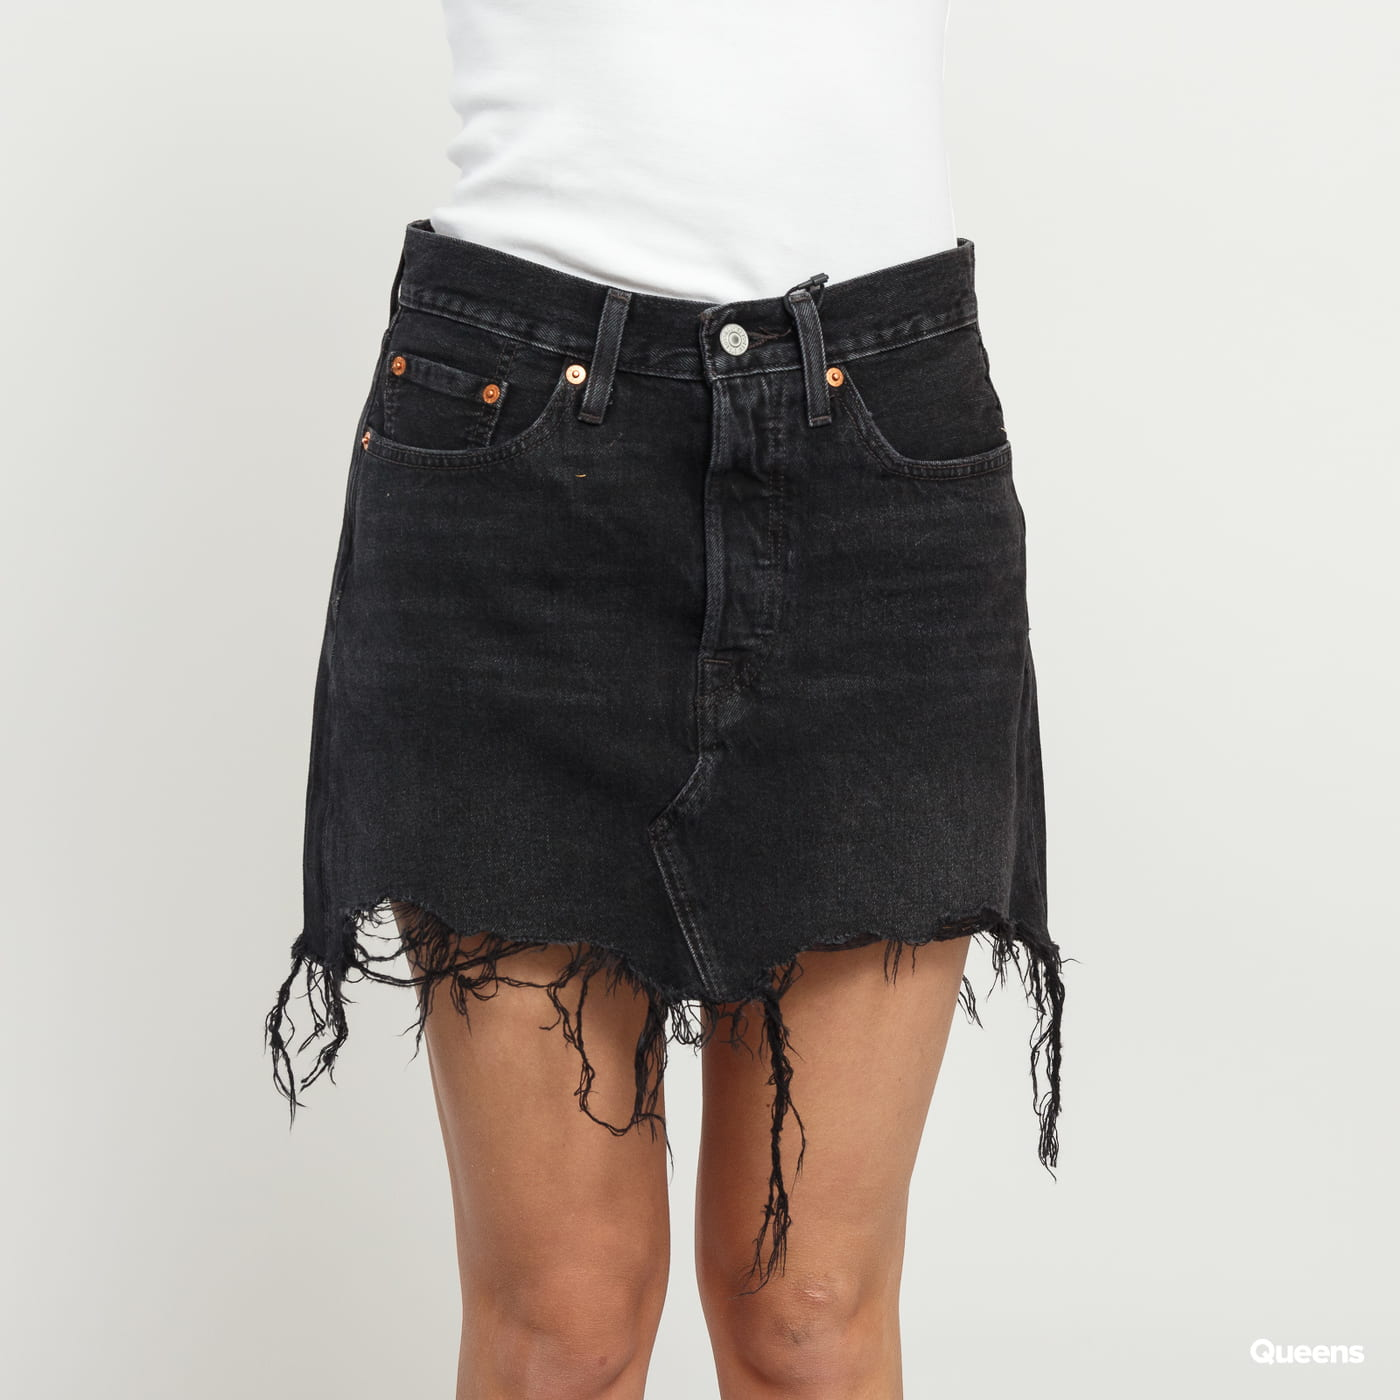 a34b0deef ... Women fashion · Hats · All · Our Stores. Zoom in Zoom in Zoom in Zoom  in. Levi's ® Deconstructed Skirt ill fated